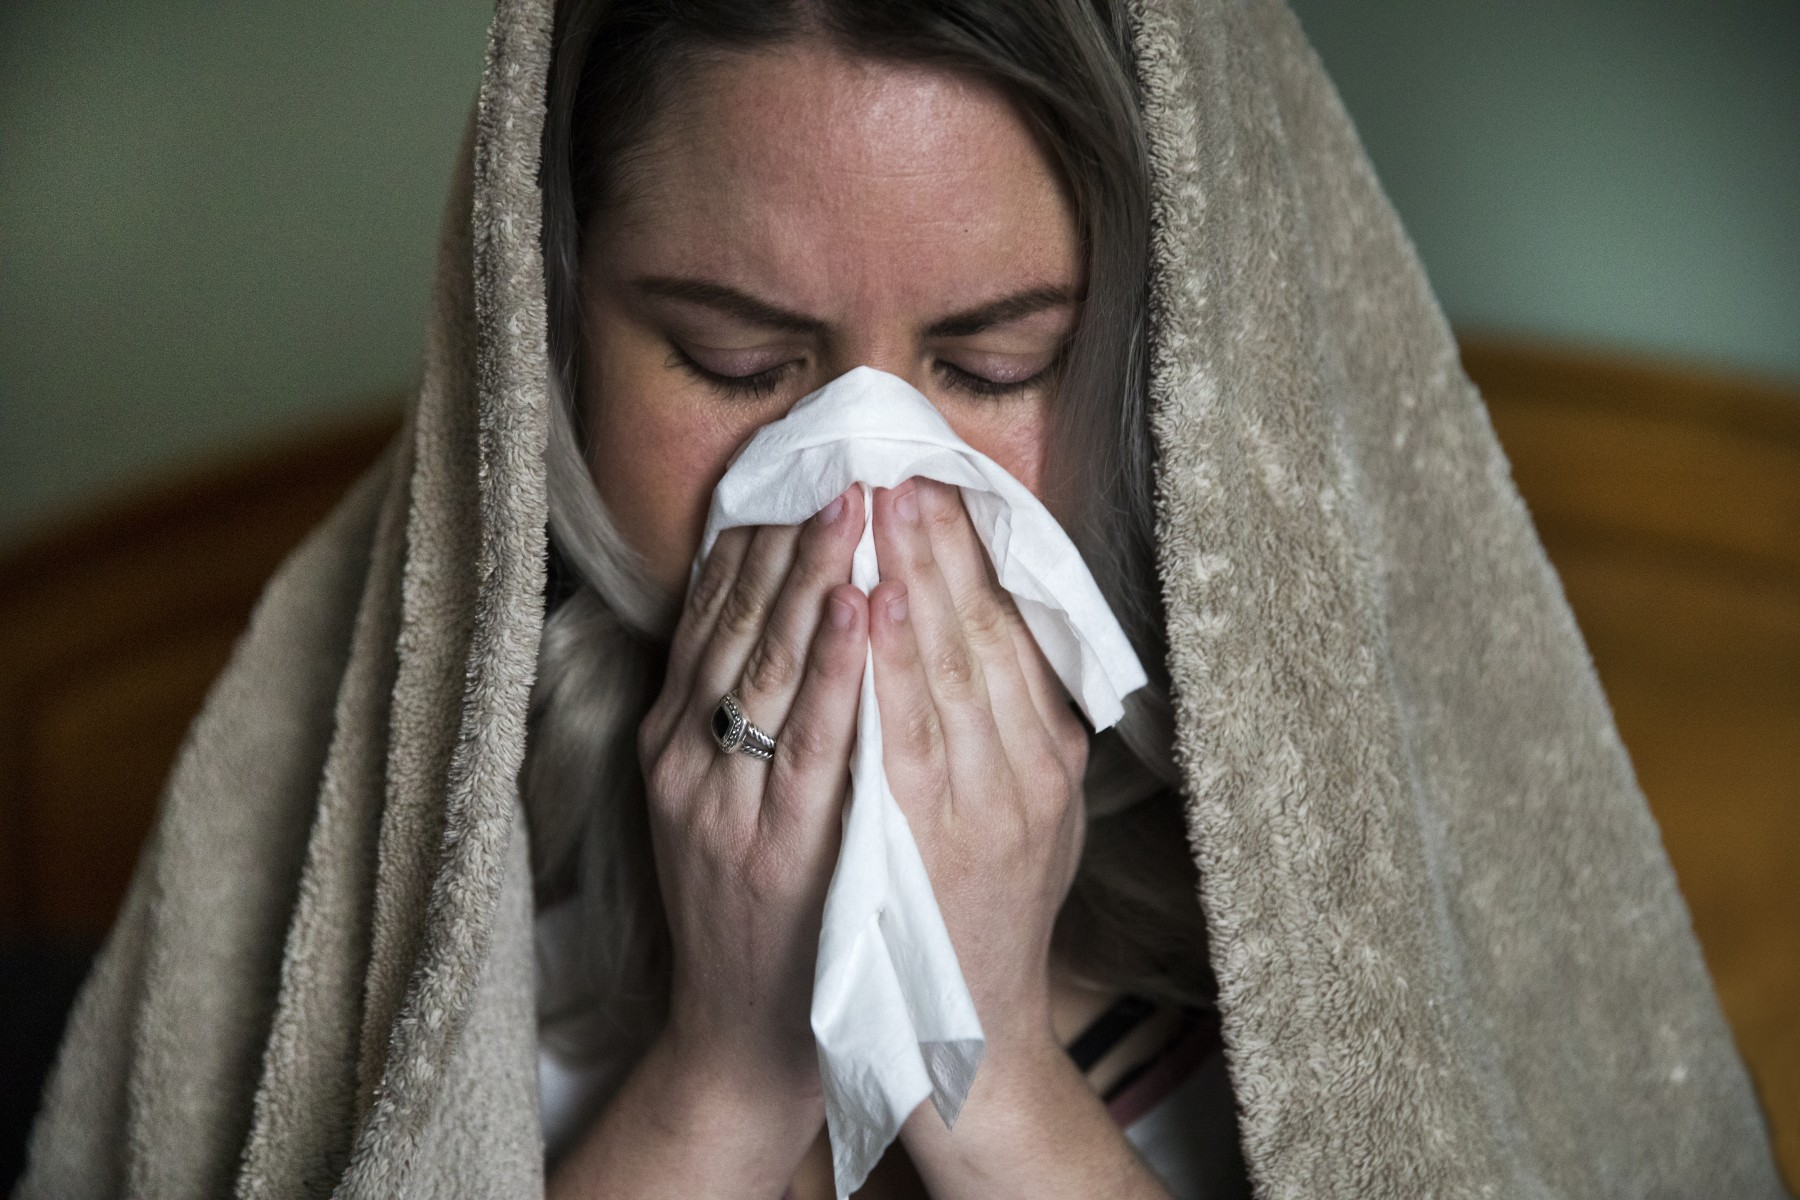 Child death toll in flu season hits 53 as hospitalizations soar